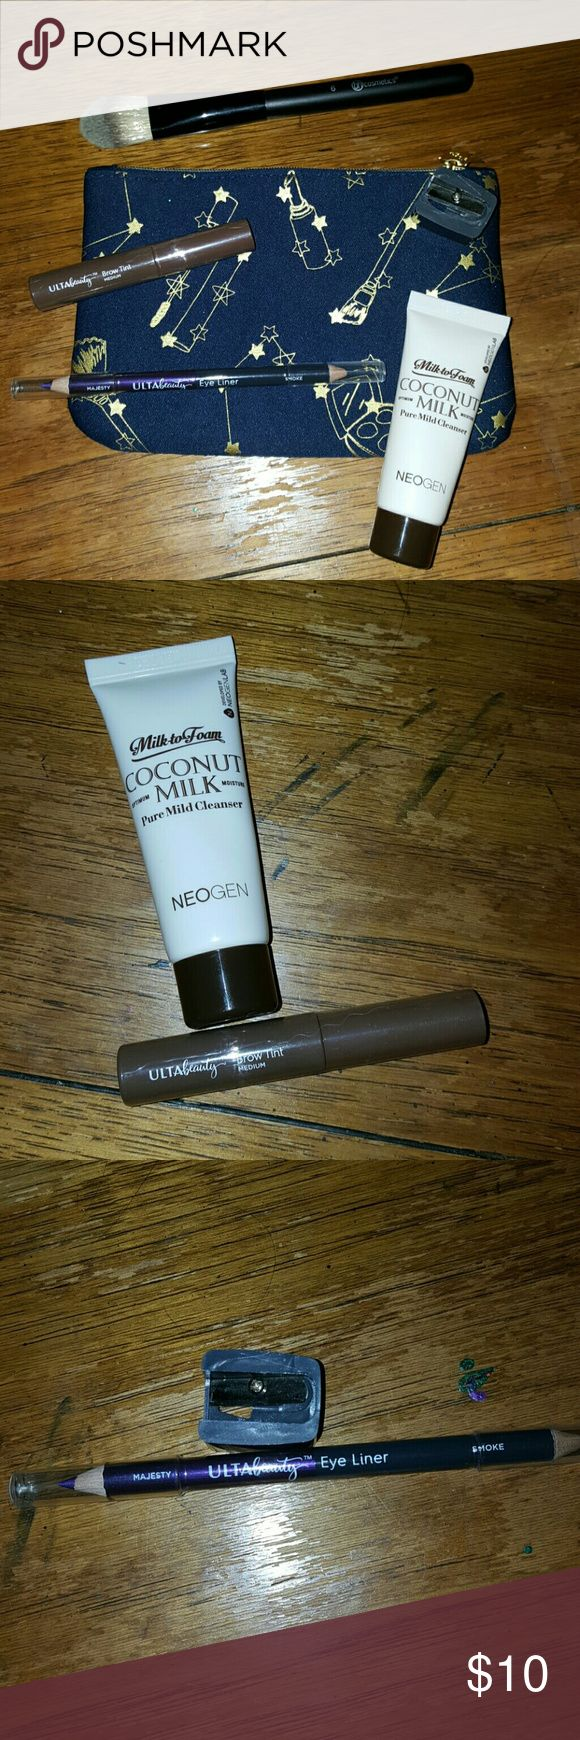 Makeup Bundle #3 -1st item is a coconut milk cleanser. It has never been used or opened, and it is a foaming face cleanser. -2nd item is an Ulta beauty brow tint in the shade of medium. It also has never been opened or used.  -3rd item is an Ulta beauty pencil eye liner. It has two ends; majesty and smoke. It has never been used and comes with a sharpener.  -4th item is a BH cosmetics foundation brush. It has never been used but I still washed it. -5th item is a makeup bag with makeup star…